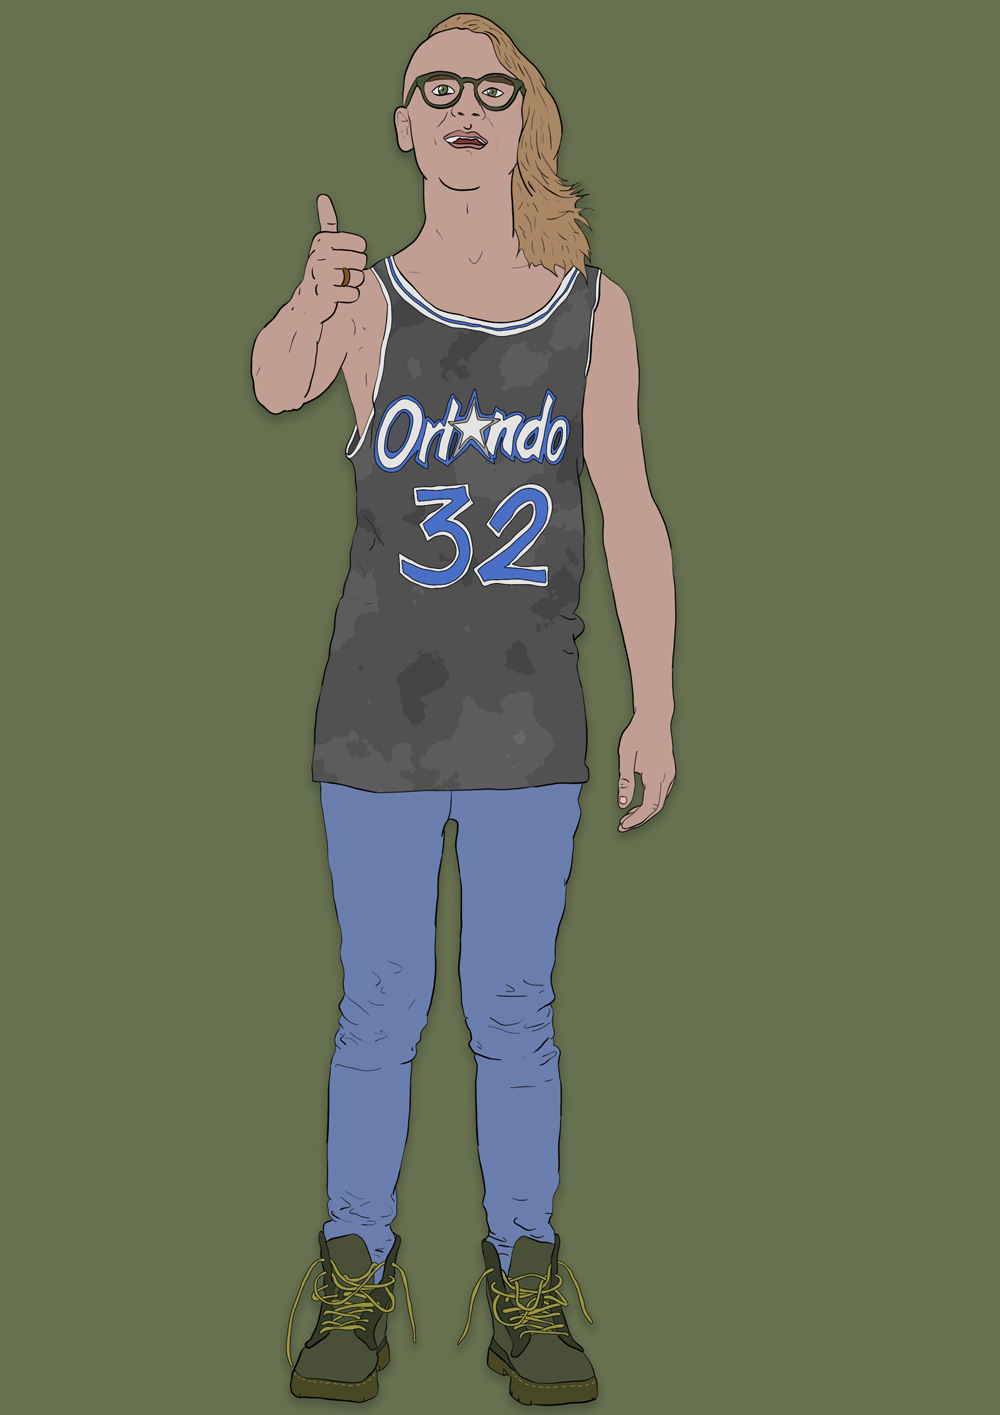 I turned 32 on Shaq's birthday. And drew a picture of myself, like a weirdo.